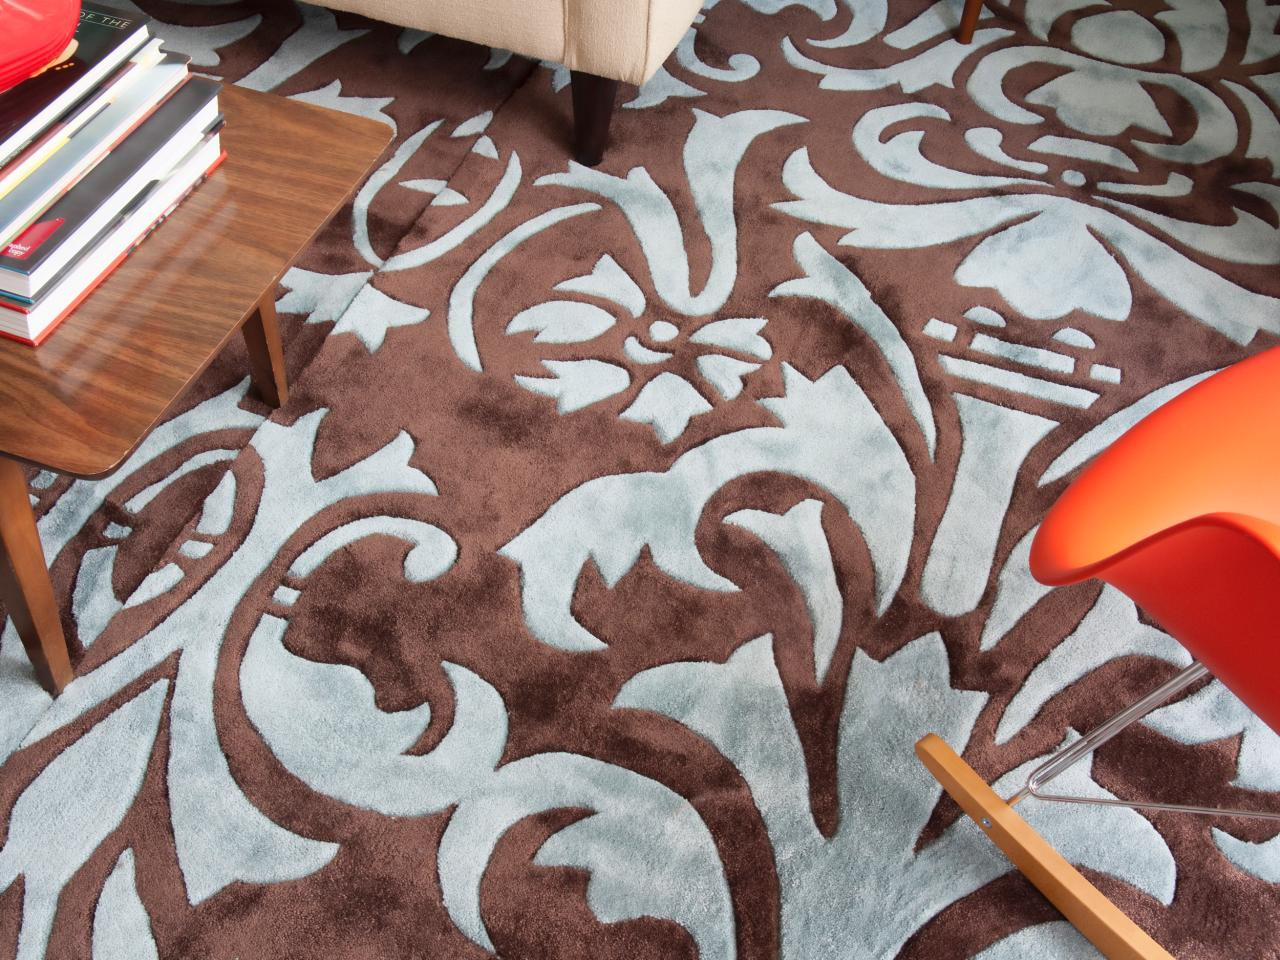 How To Make One Large Custom Area Rug From Several Small Ones HGTV - New patterned rugs designs